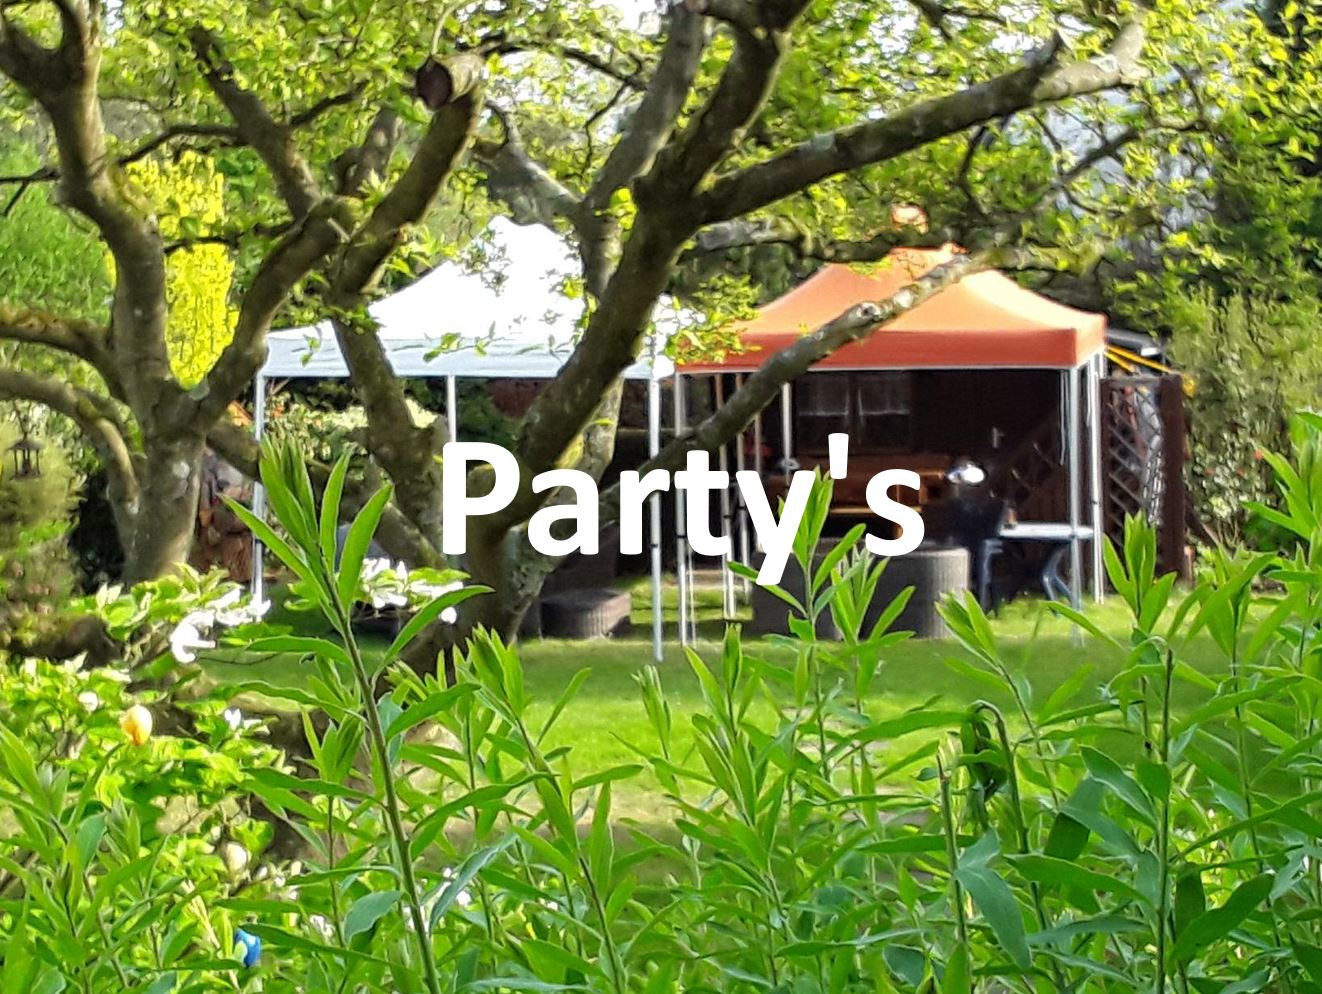 Party in Koeln